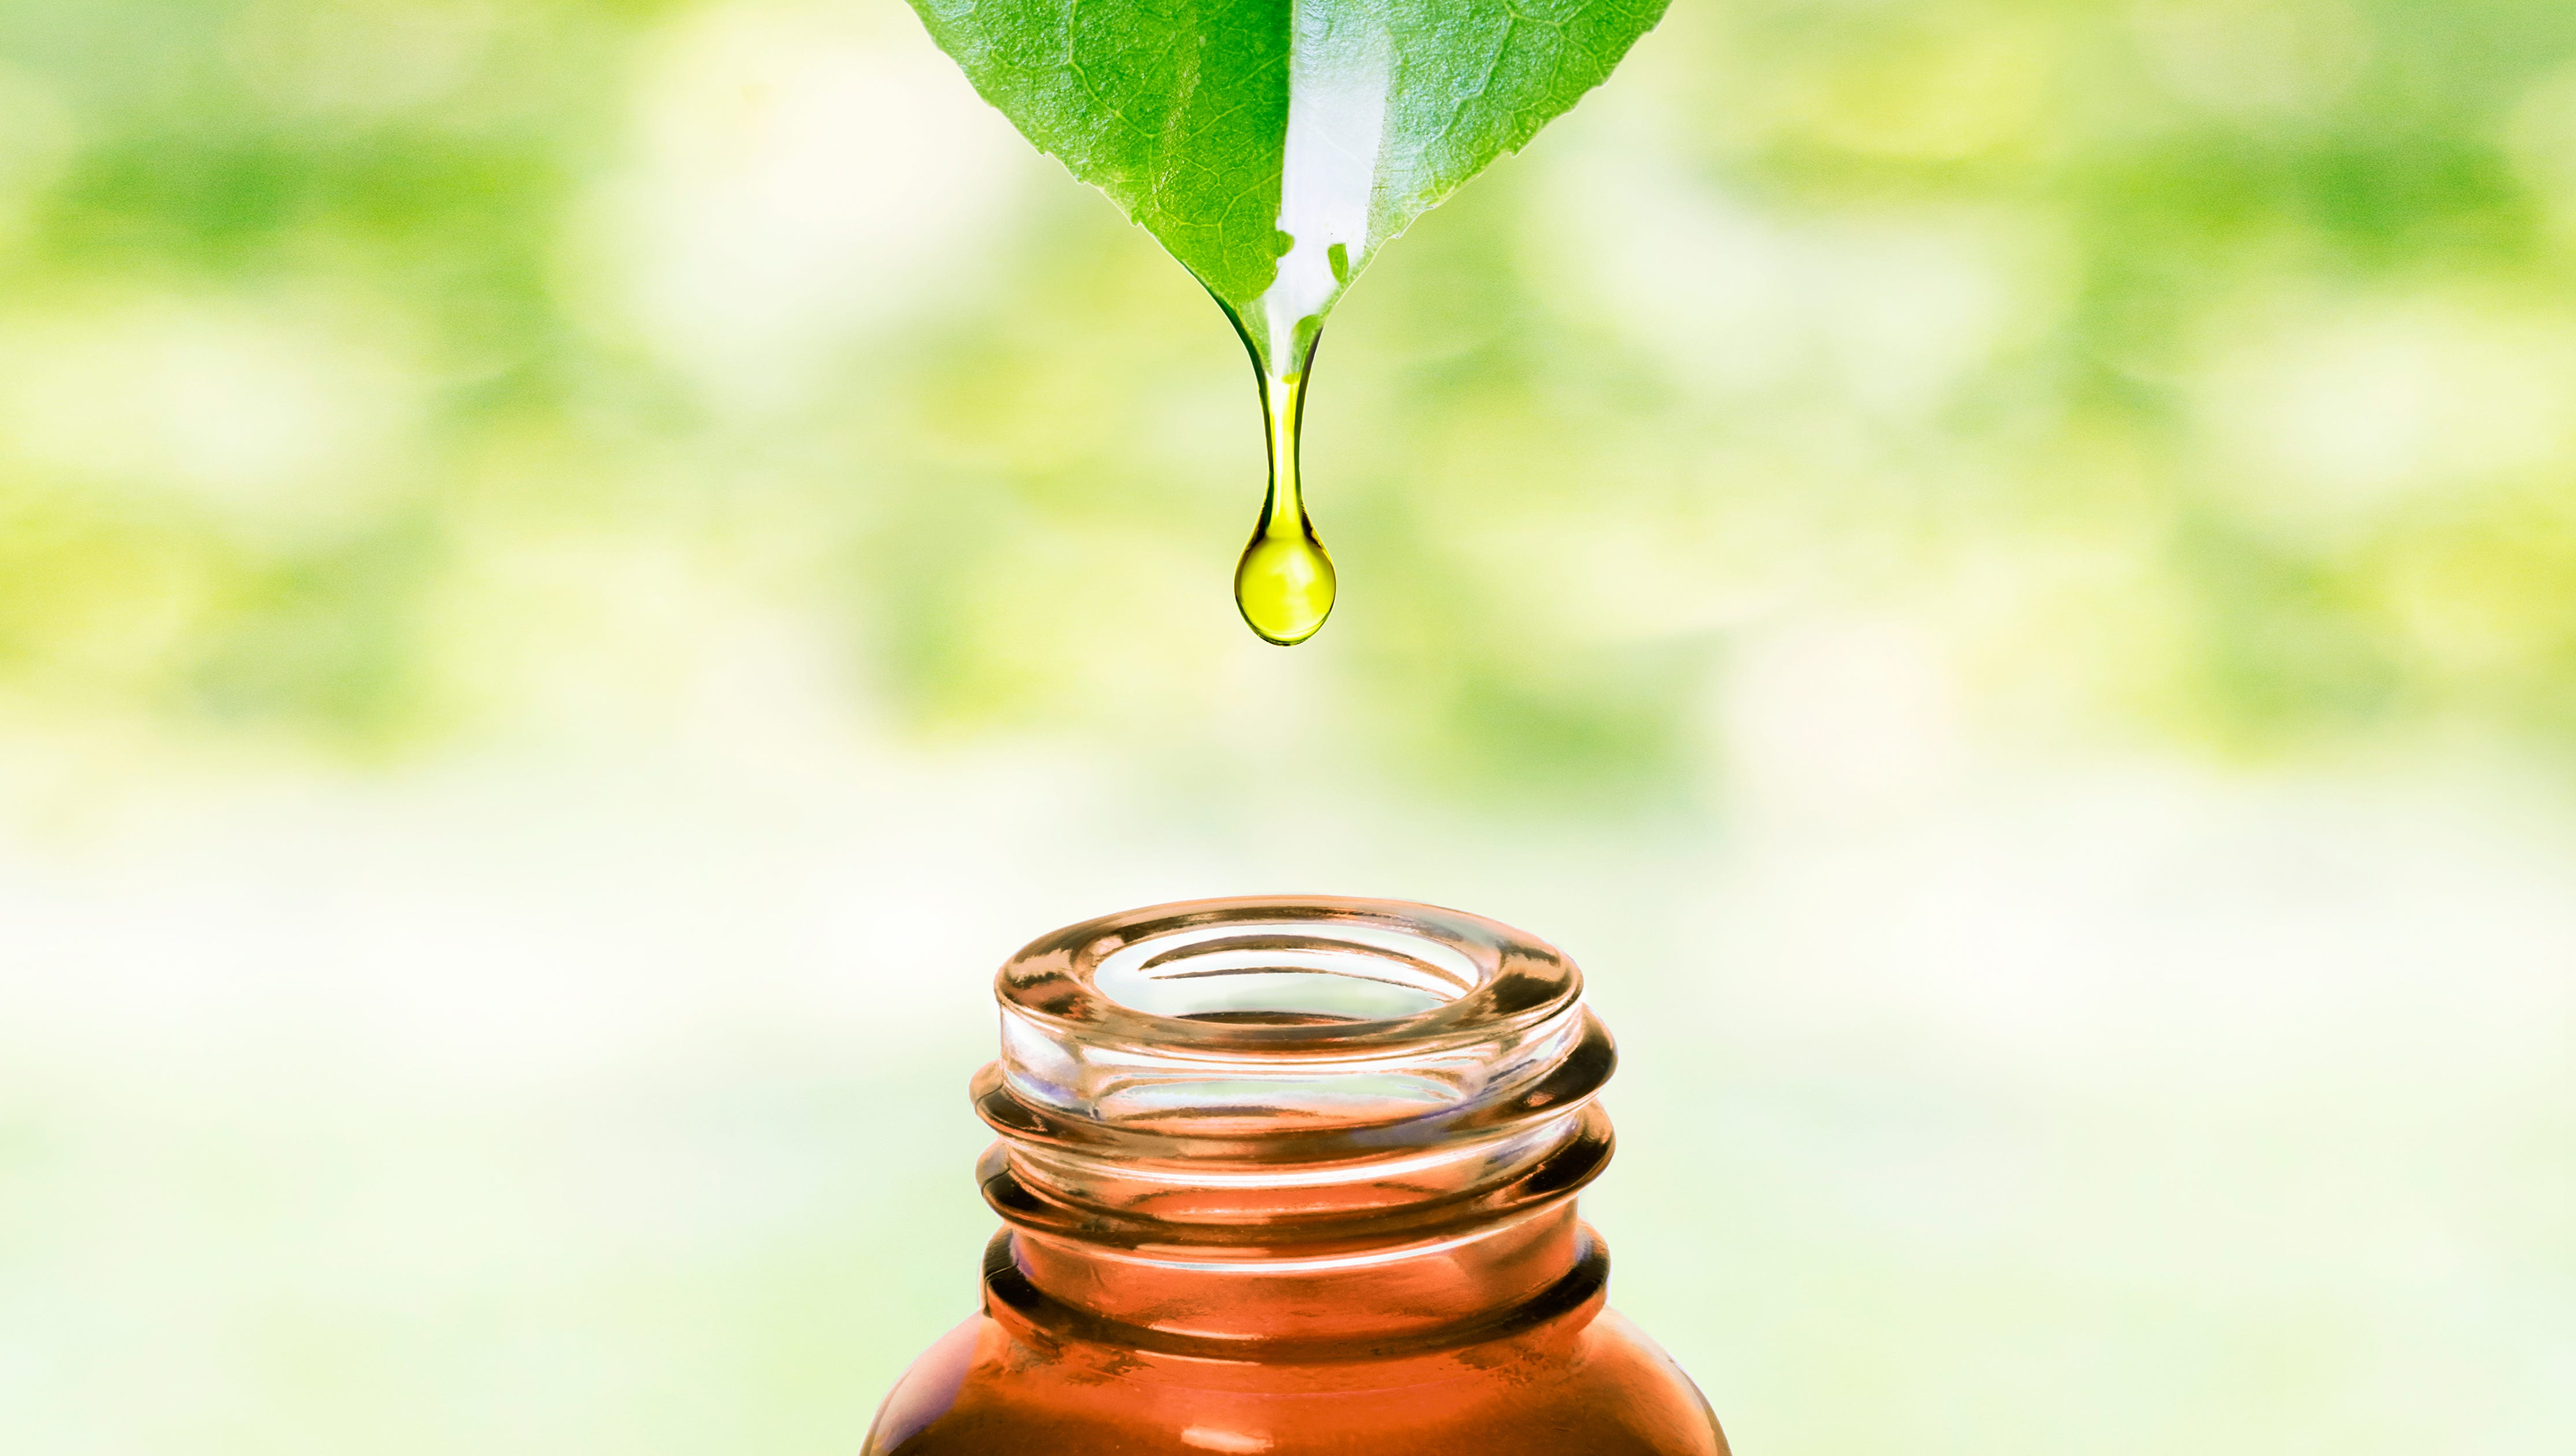 Essential Oil Guide What Oils To Use How To Use Them And Safety Tips